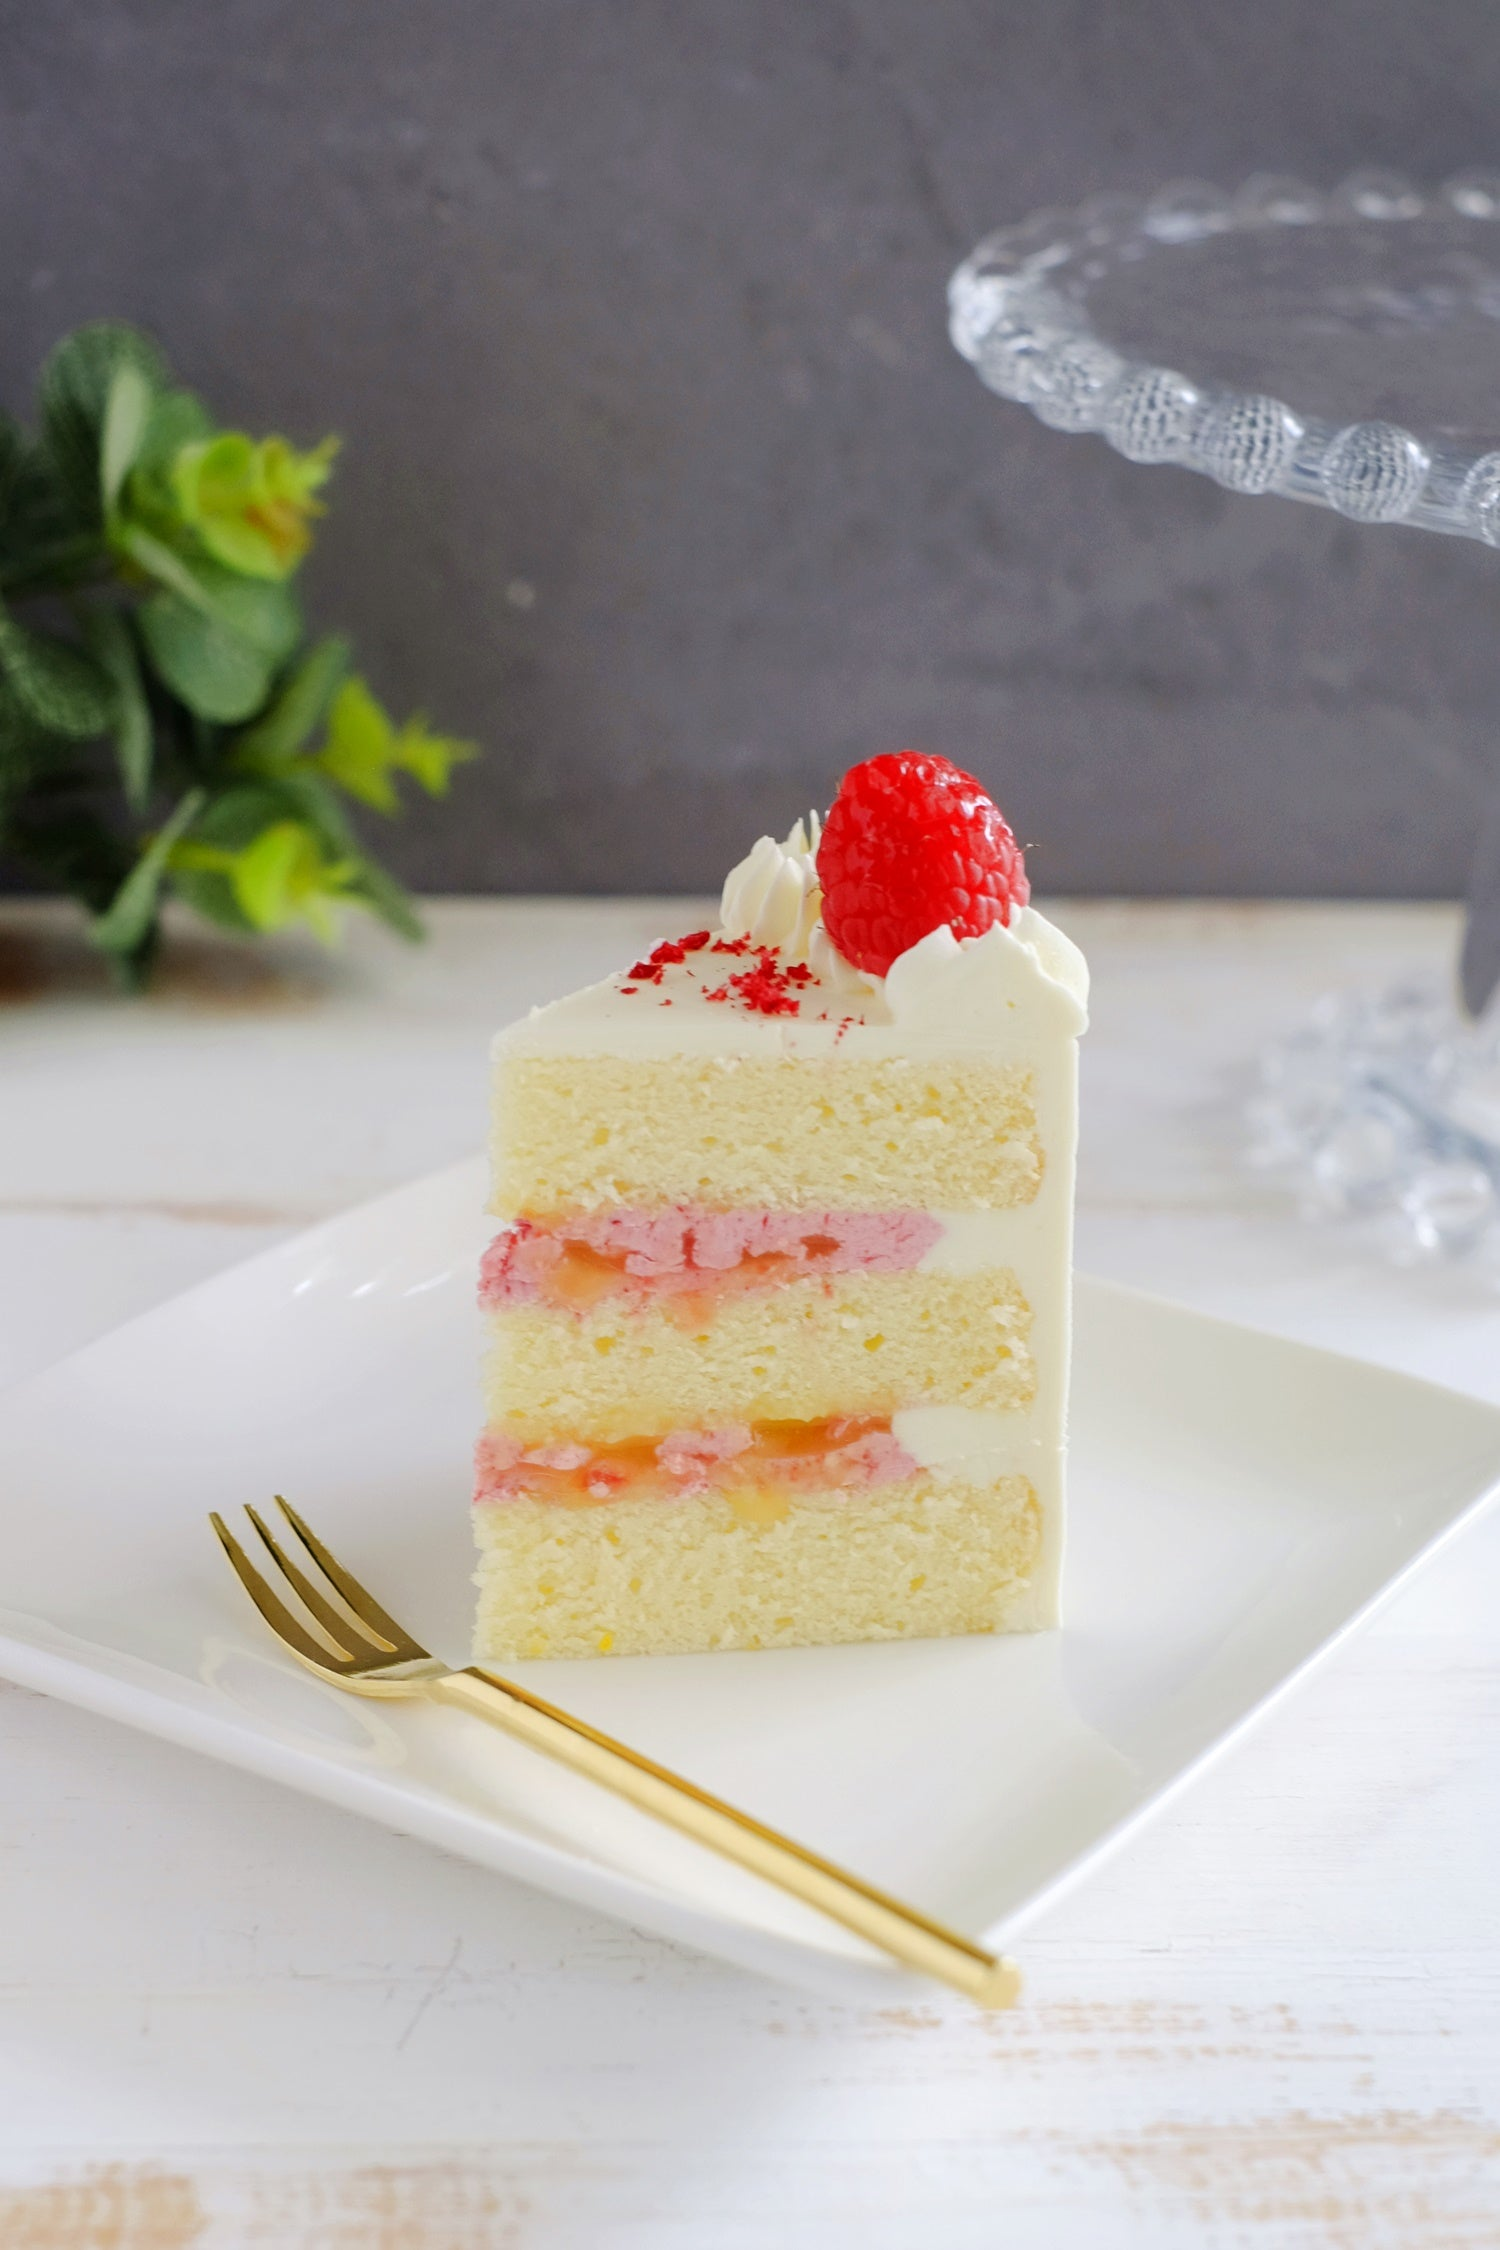 Slice of Raspberry Lemonade Cake